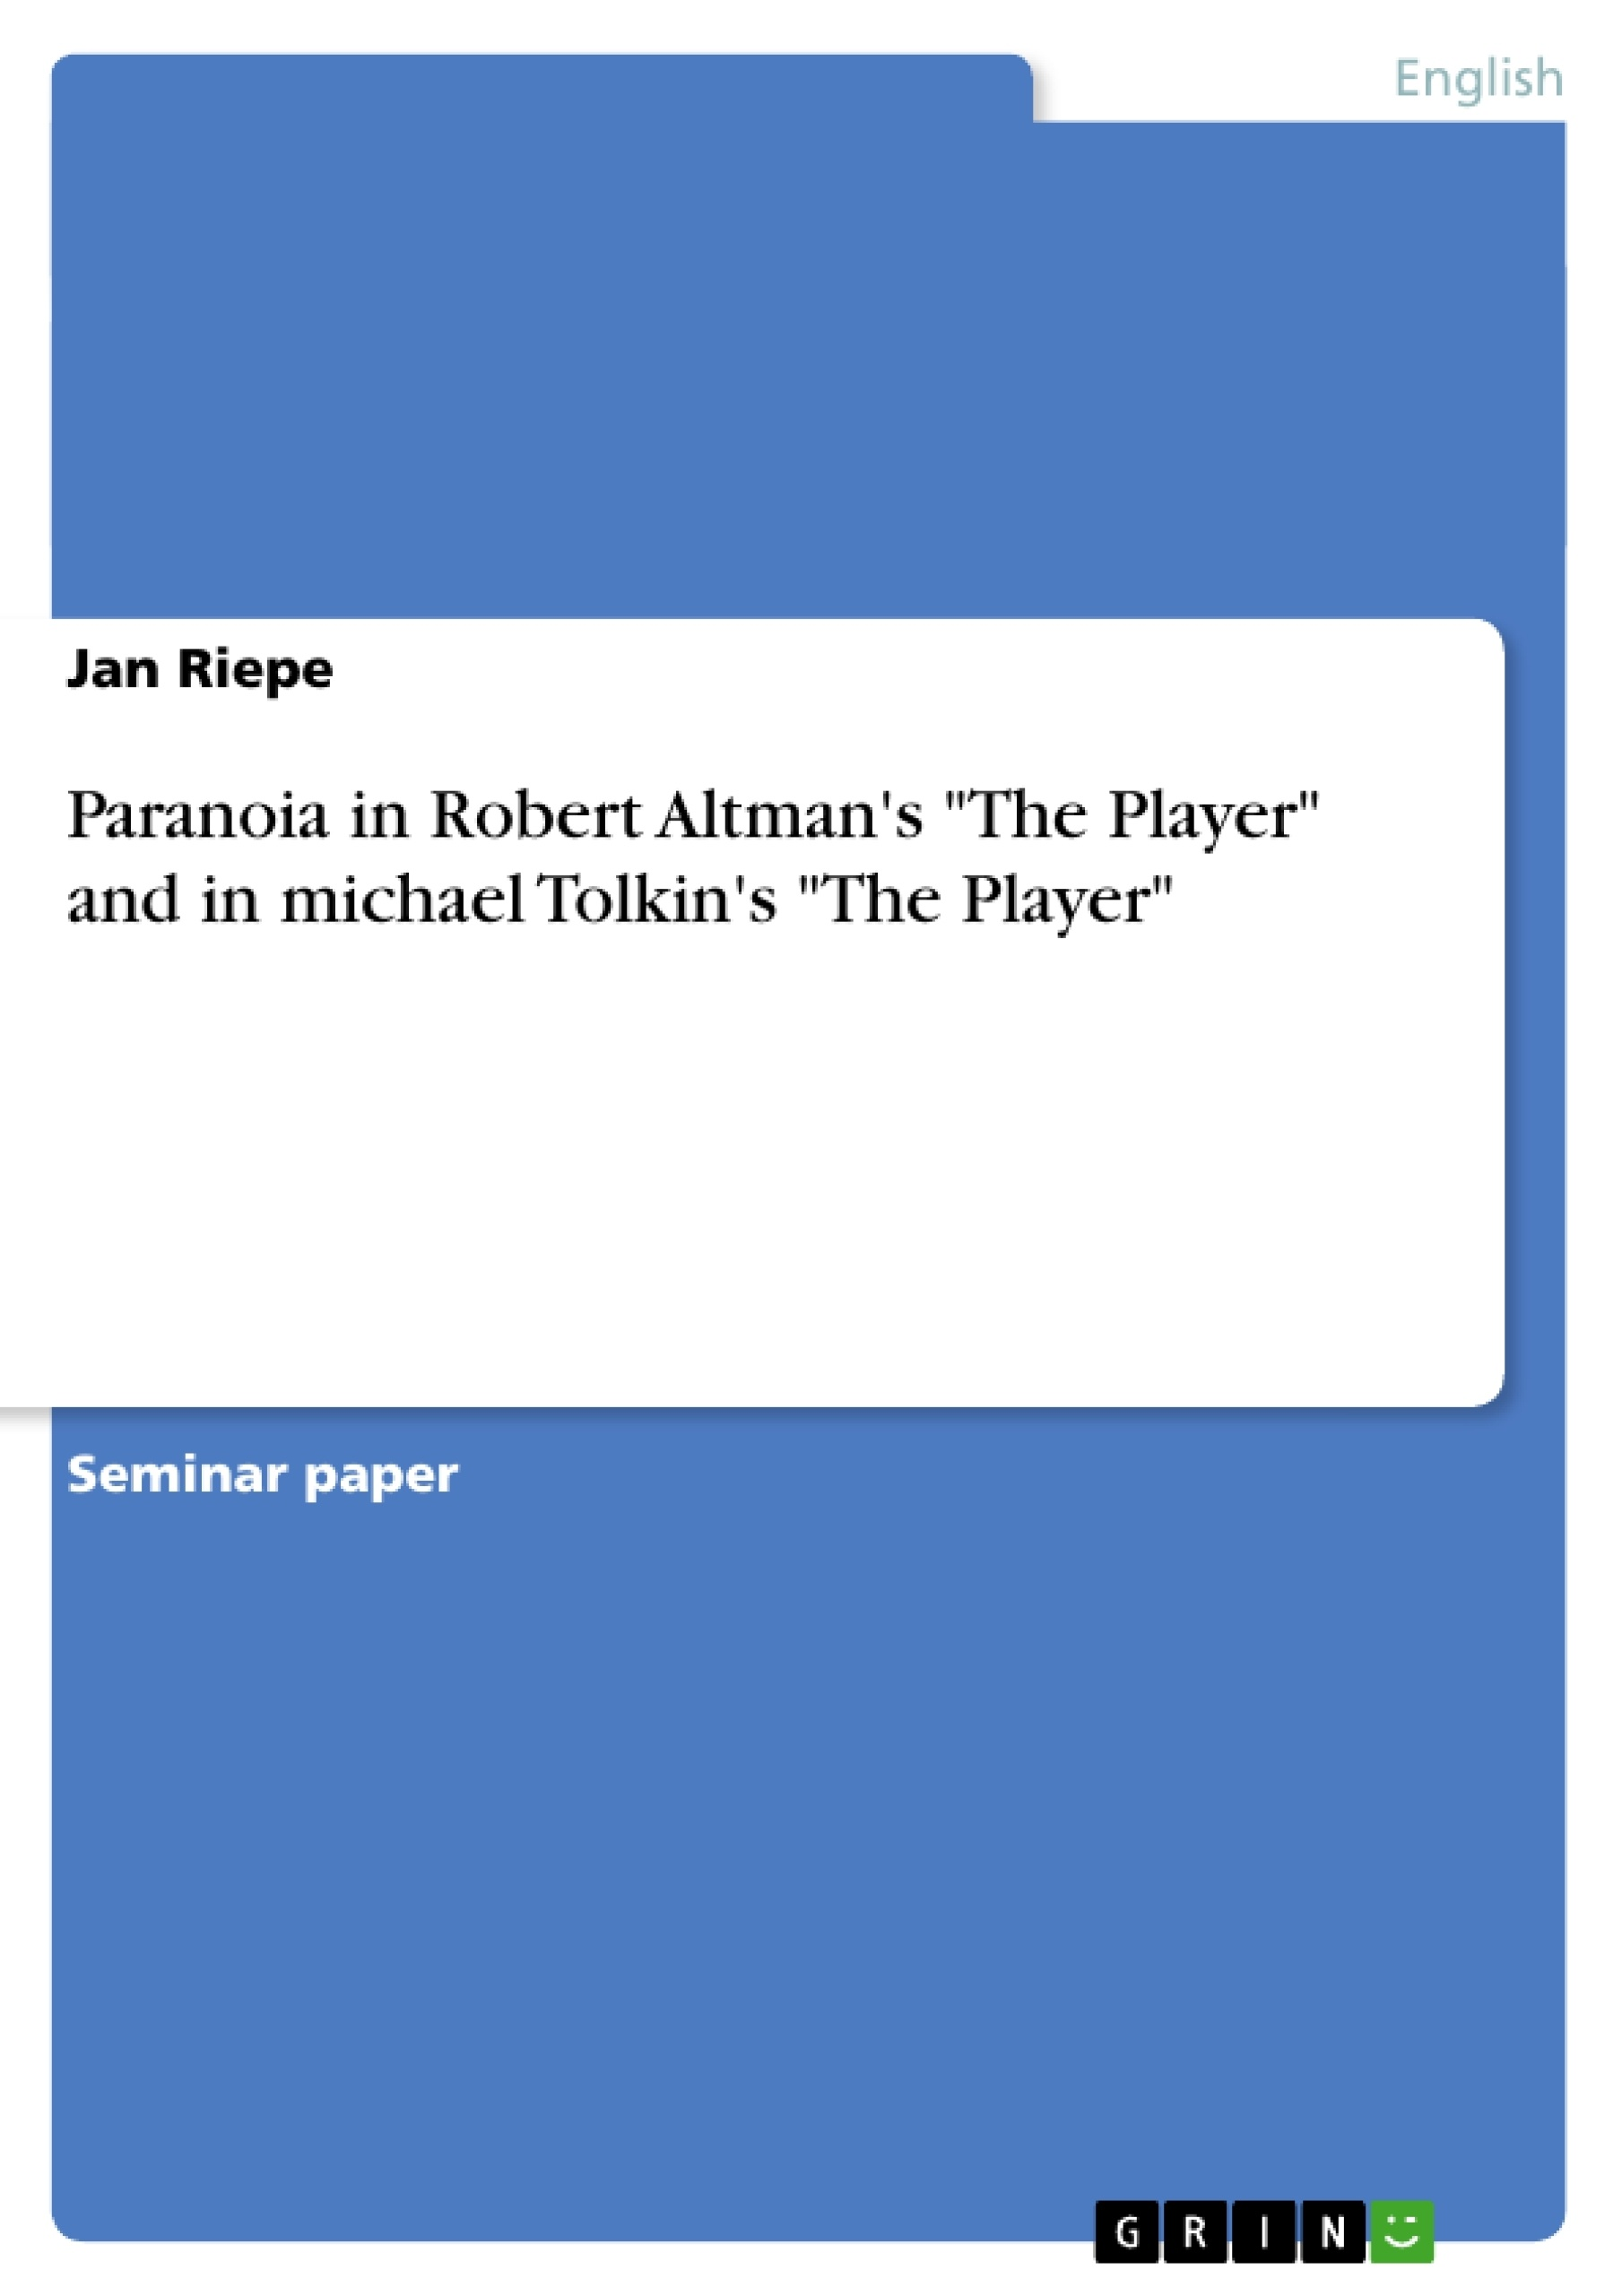 """Title: Paranoia in Robert Altman's """"The Player"""" and in michael Tolkin's """"The Player"""""""